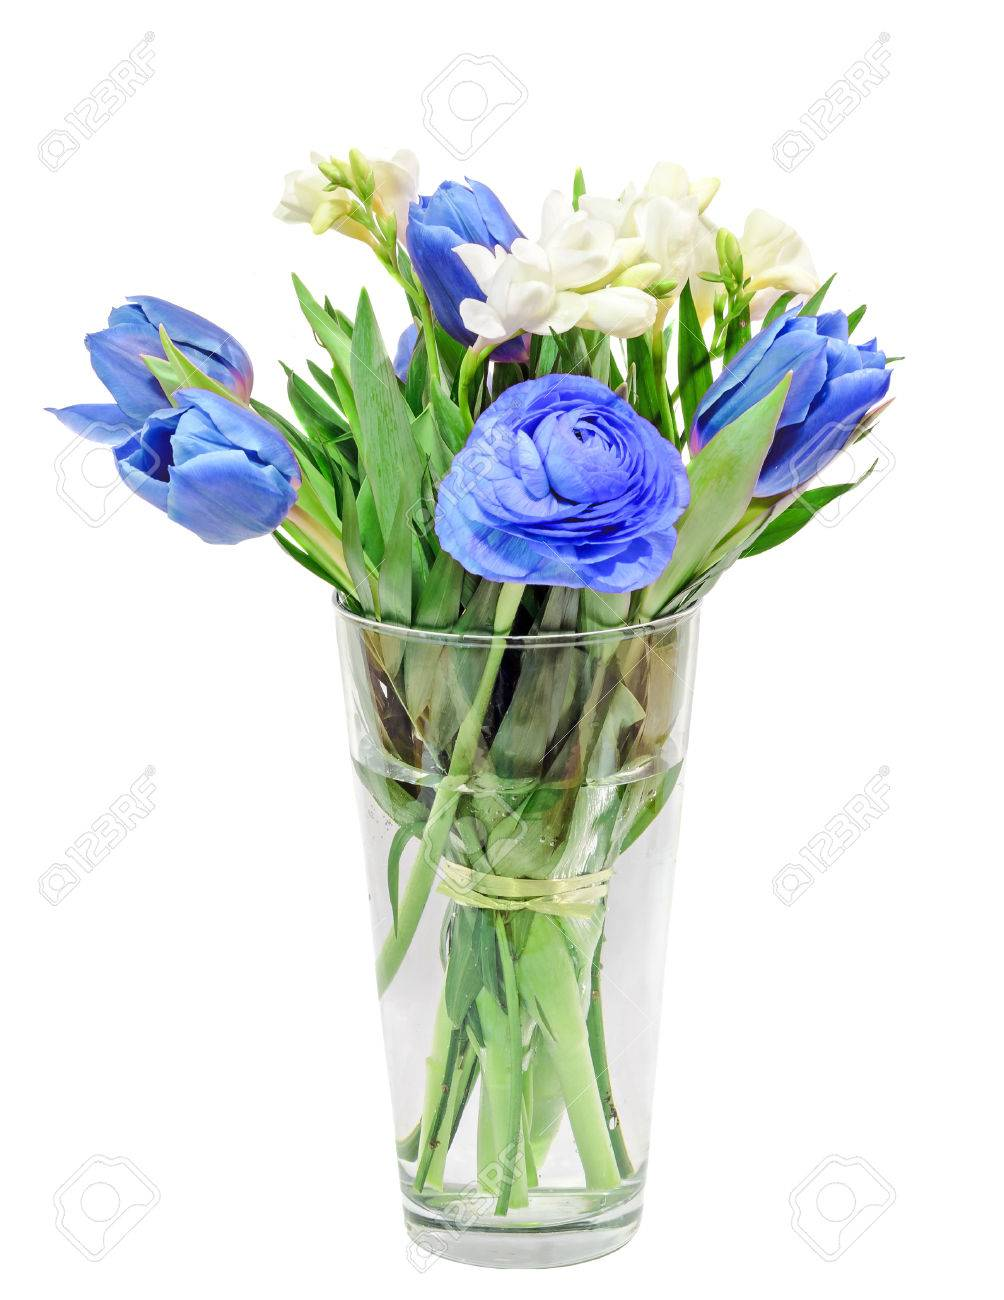 Blue Tulips White Freesias Ranunculus Flowers Bouquet Floral Stock Photo Picture And Royalty Free Image Image 70451367